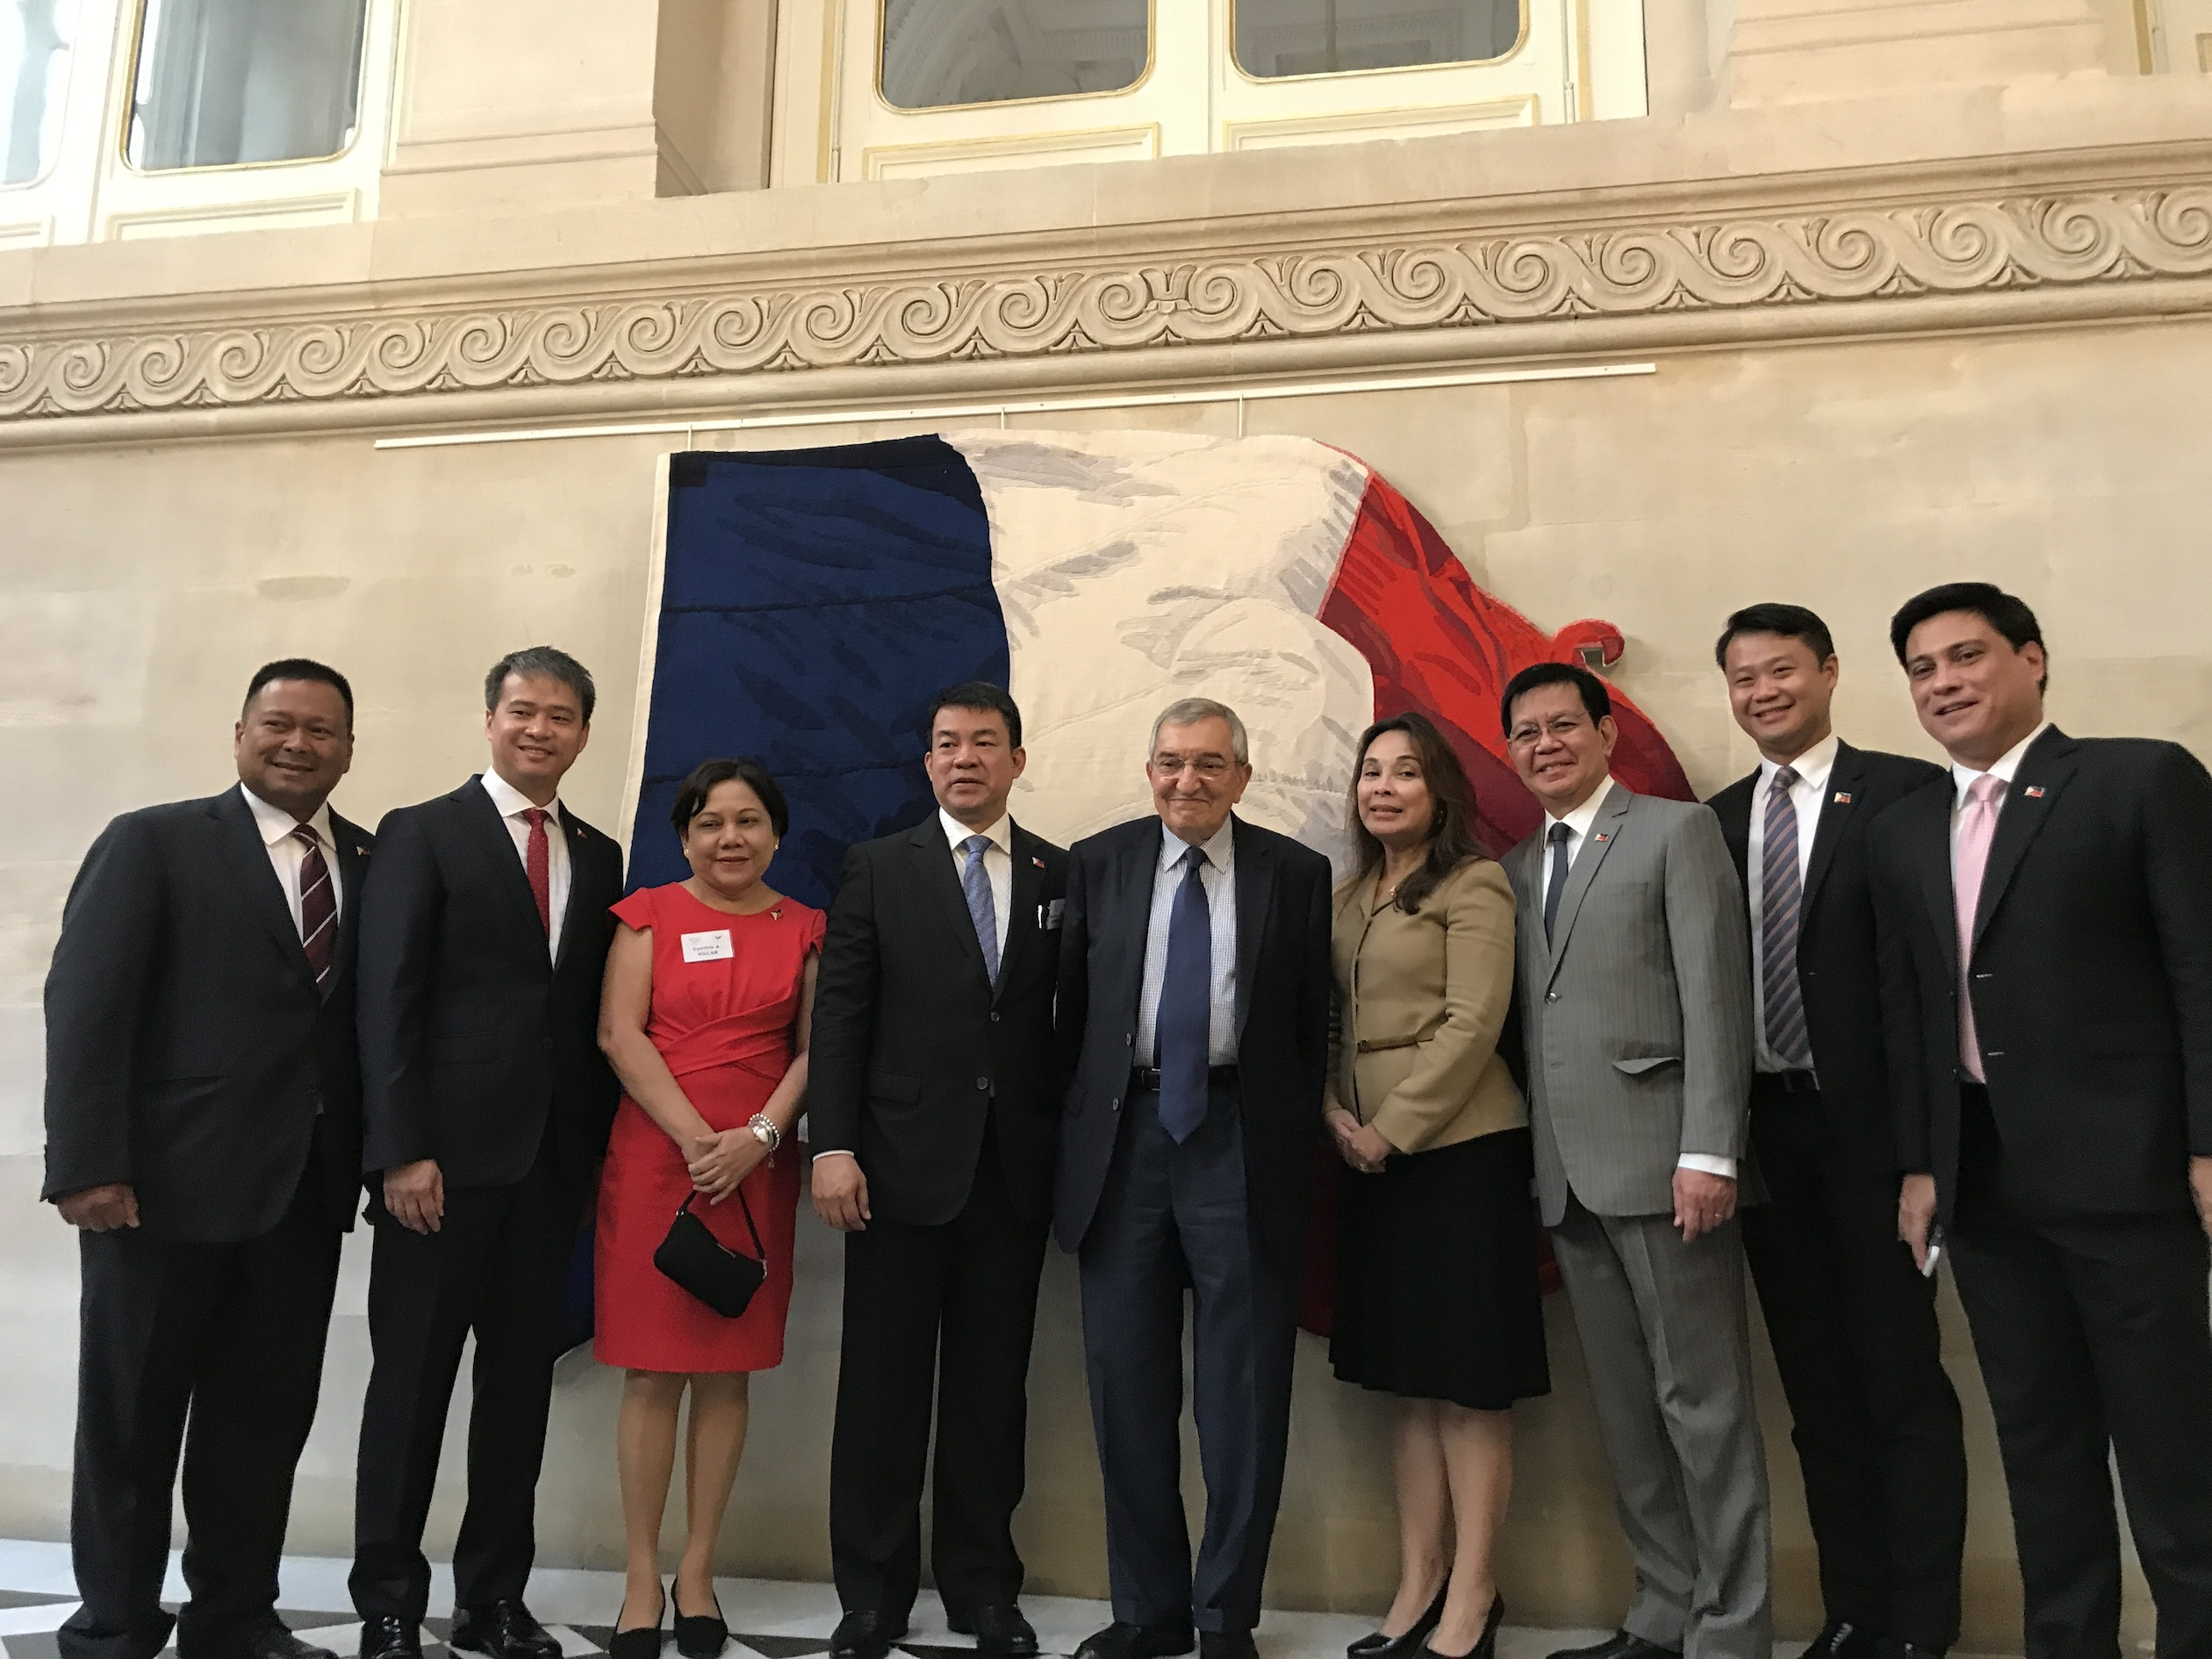 PH-France celebrates 70 years of bilateral relations